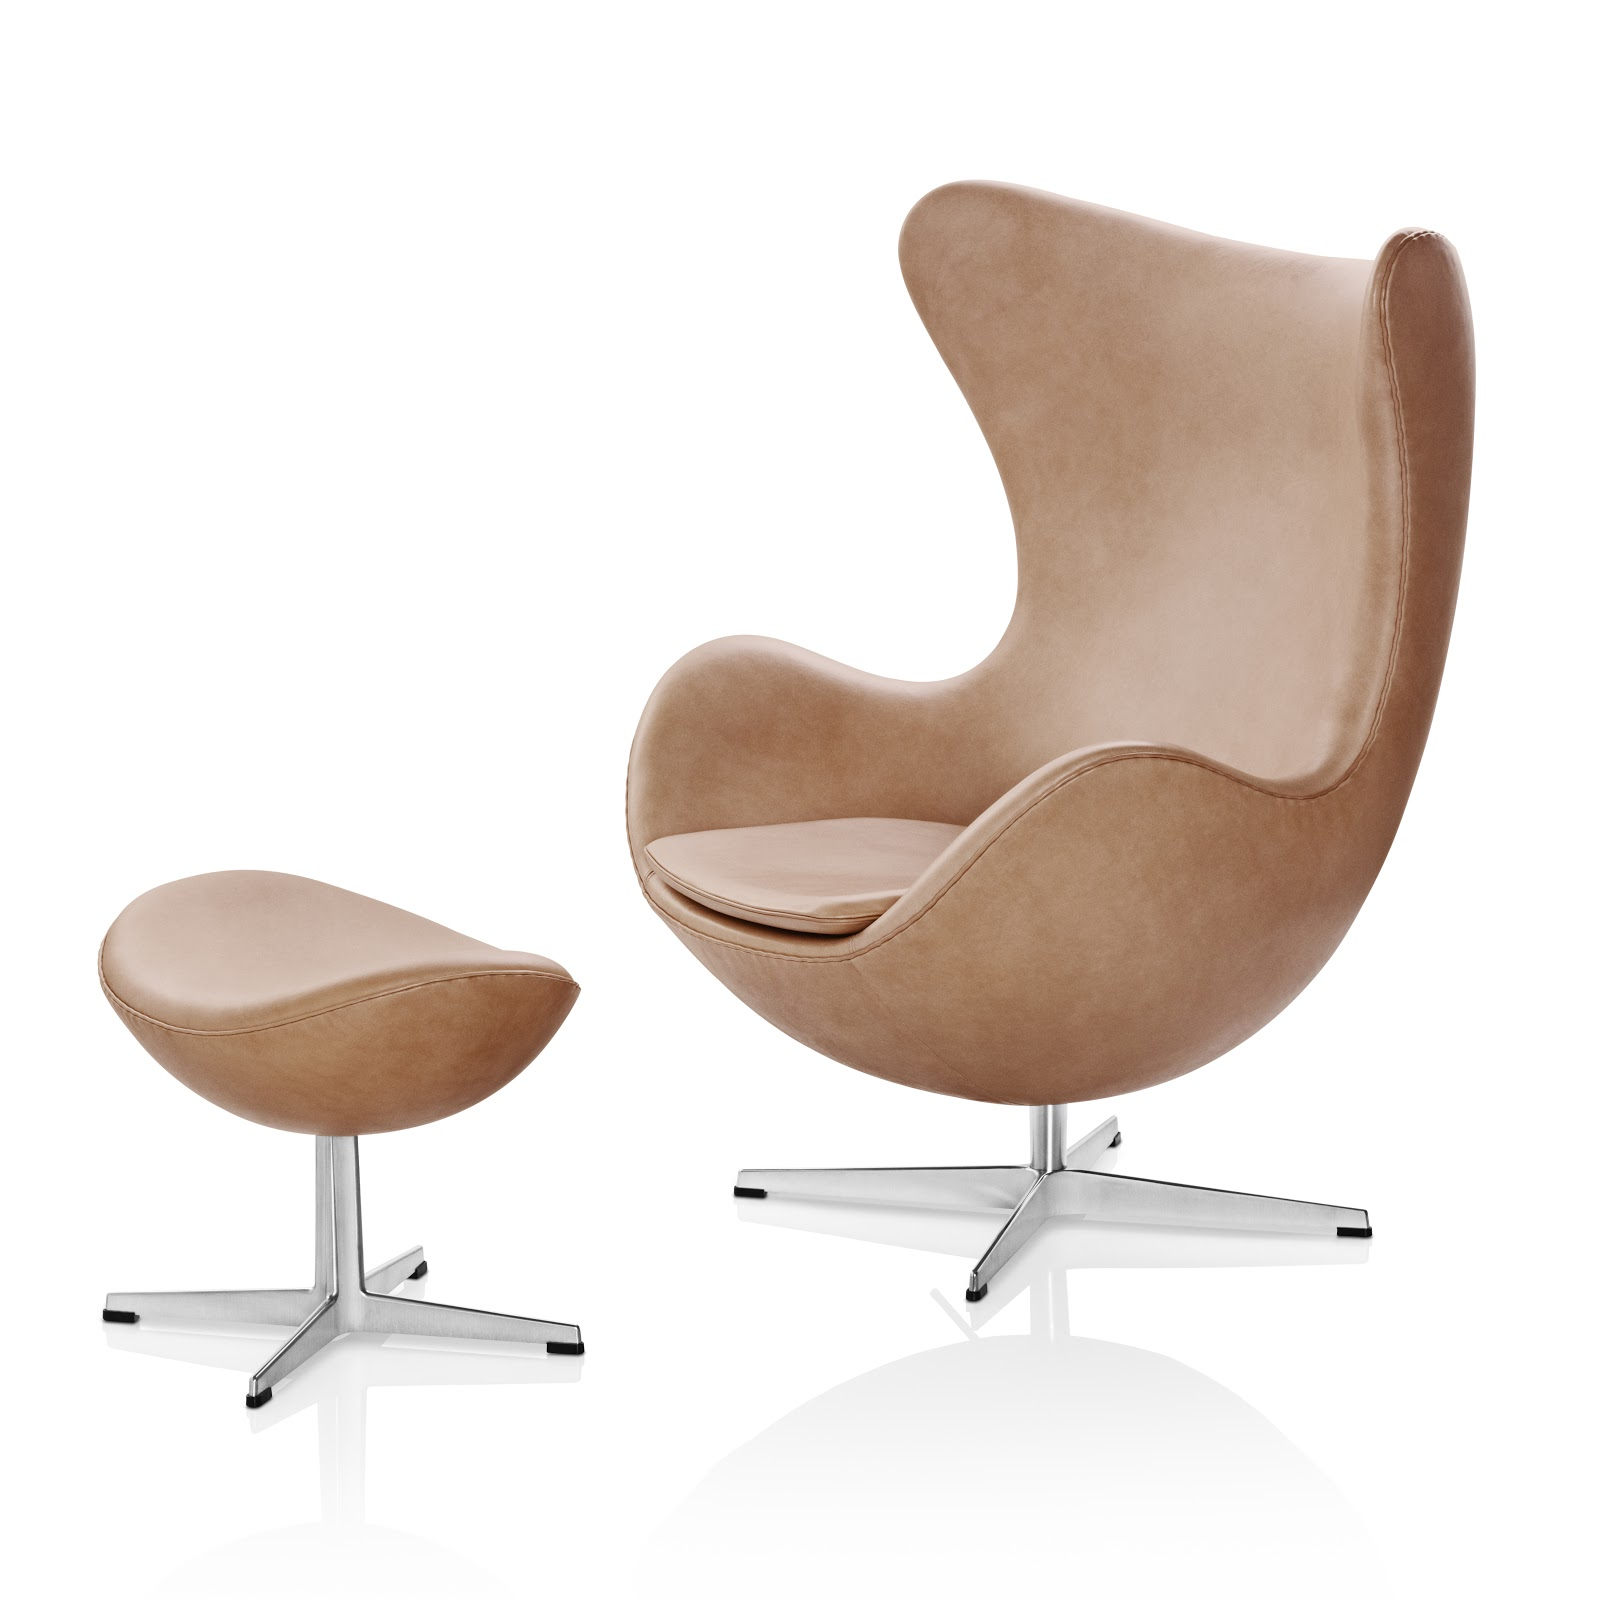 Arne jacobsen egg chair leather - Rustic Leather Egg Chair By Arne Jacobsen Egg Chair